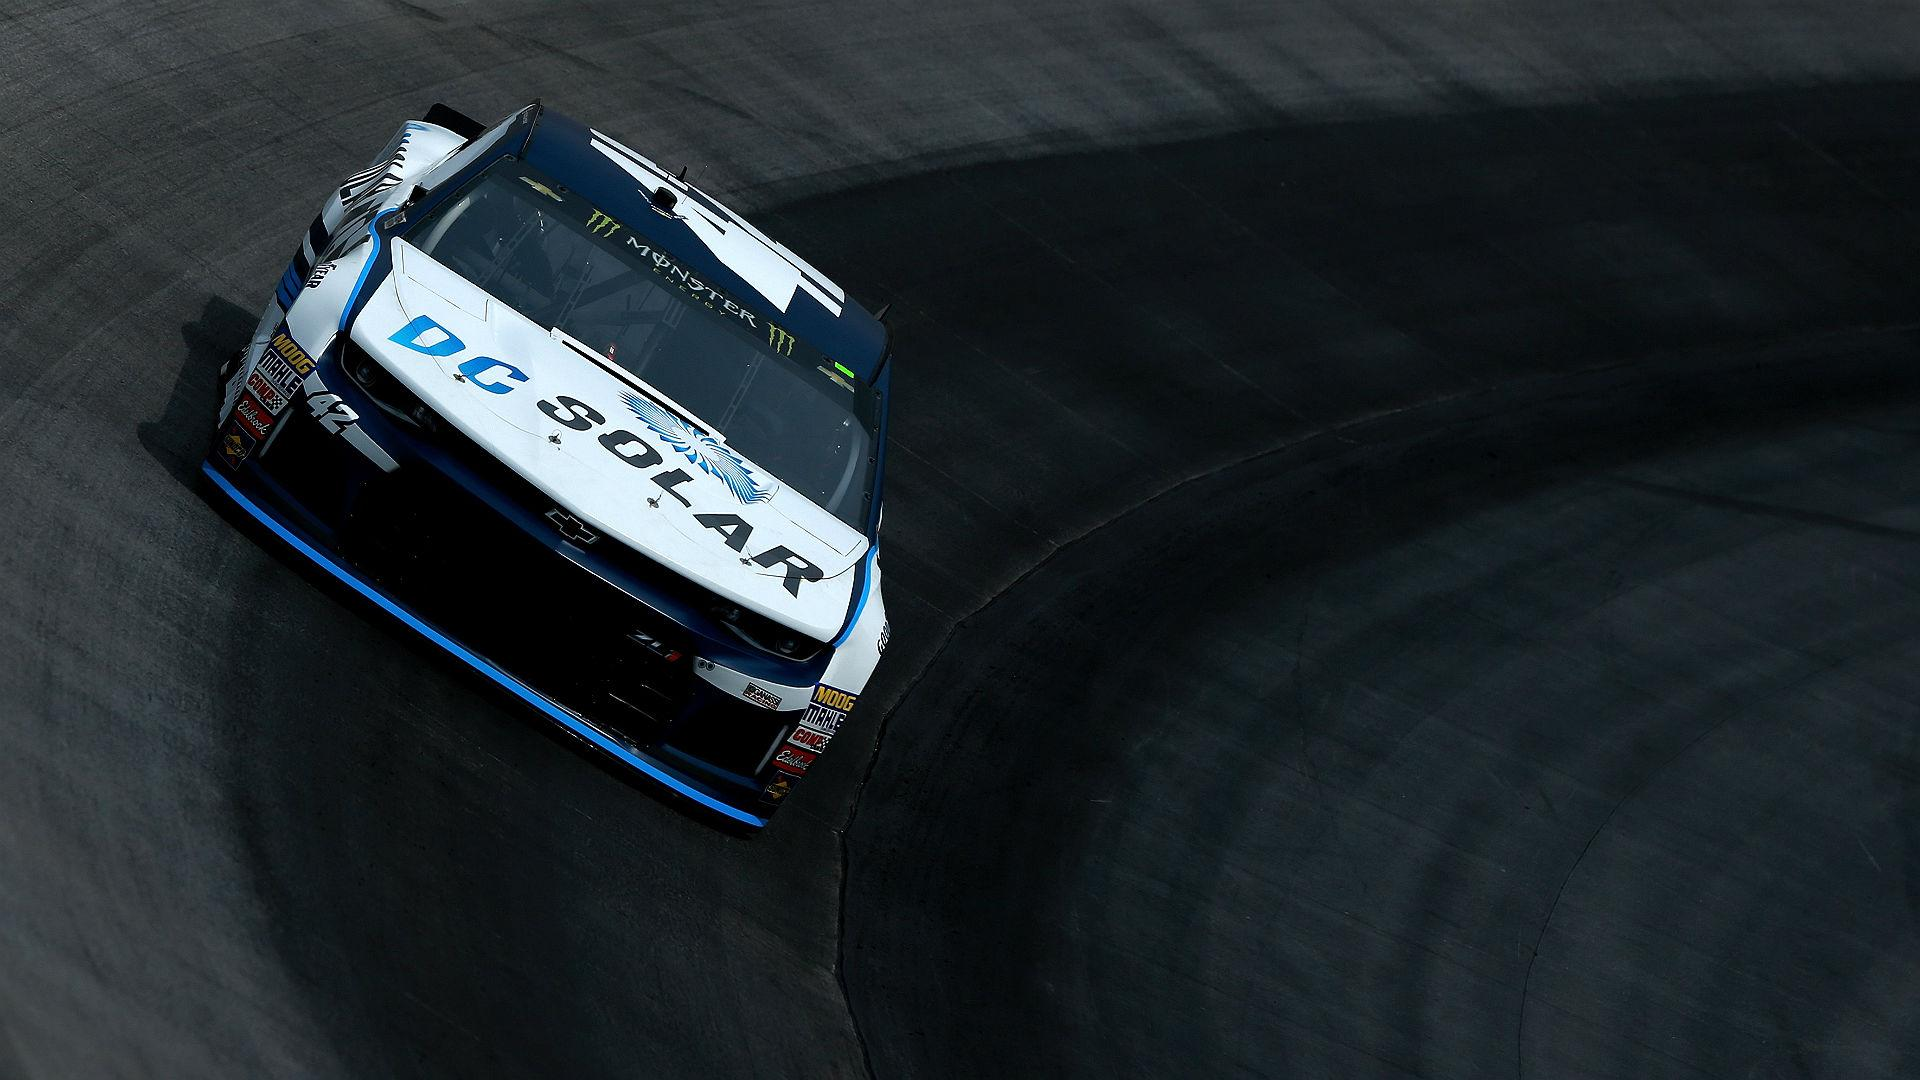 NASCAR starting lineup at Bristol: Kyle Larson wins pole, Chase Elliott 2nd for Night Race